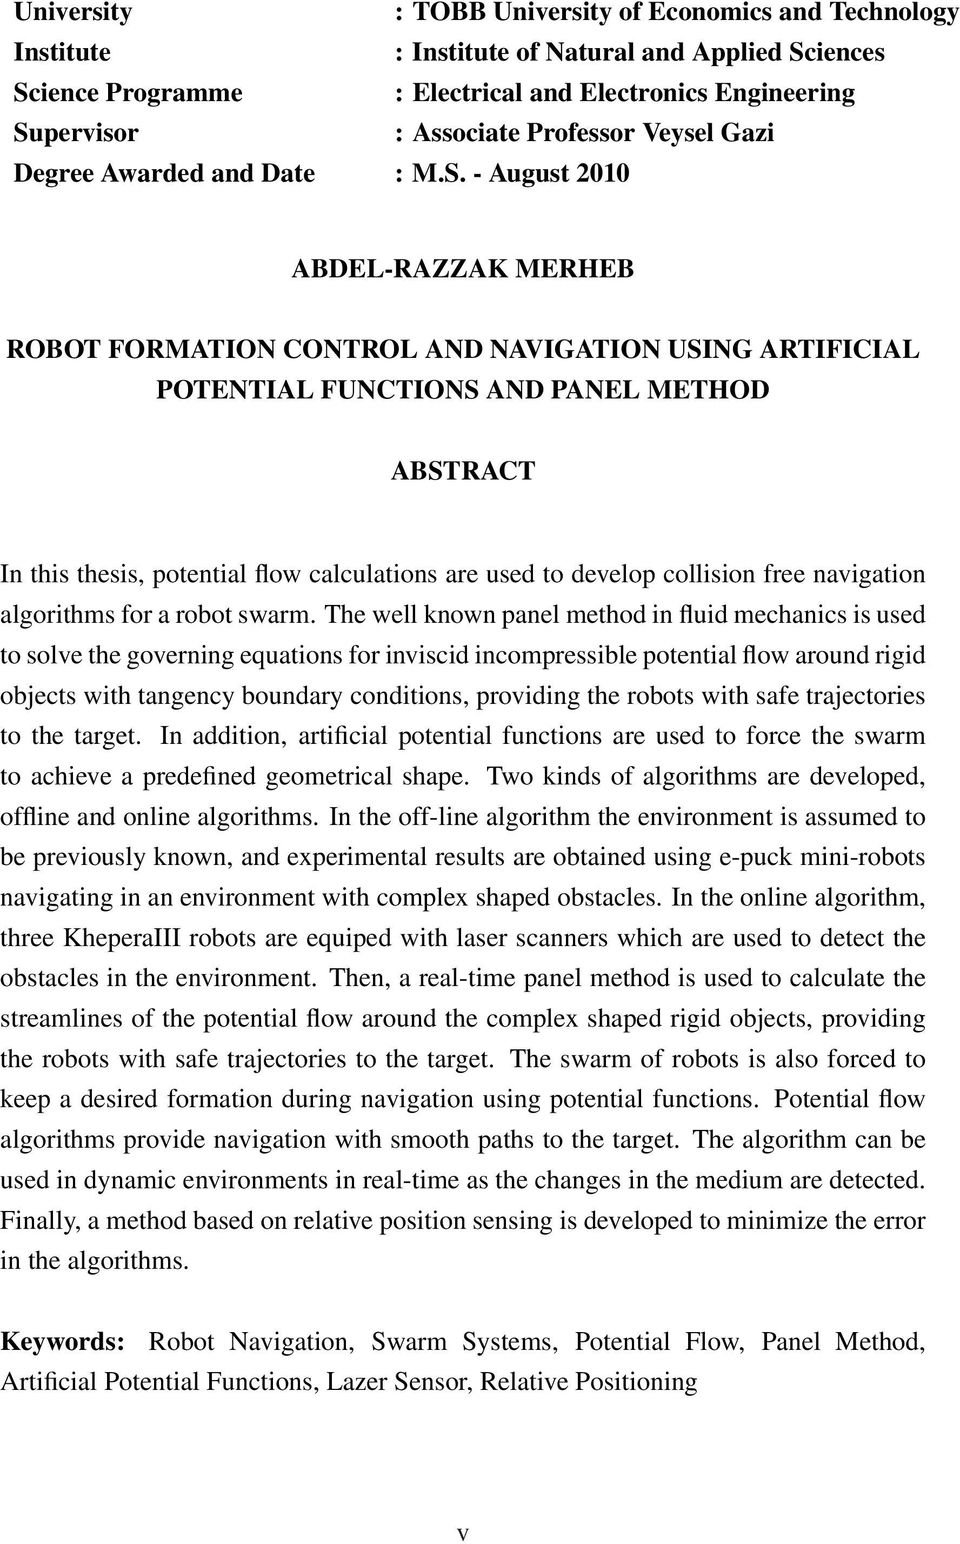 - August 2010 ABDEL-RAZZAK MERHEB ROBOT FORMATION CONTROL AND NAVIGATION USING ARTIFICIAL POTENTIAL FUNCTIONS AND PANEL METHOD ABSTRACT In this thesis, potential flow calculations are used to develop